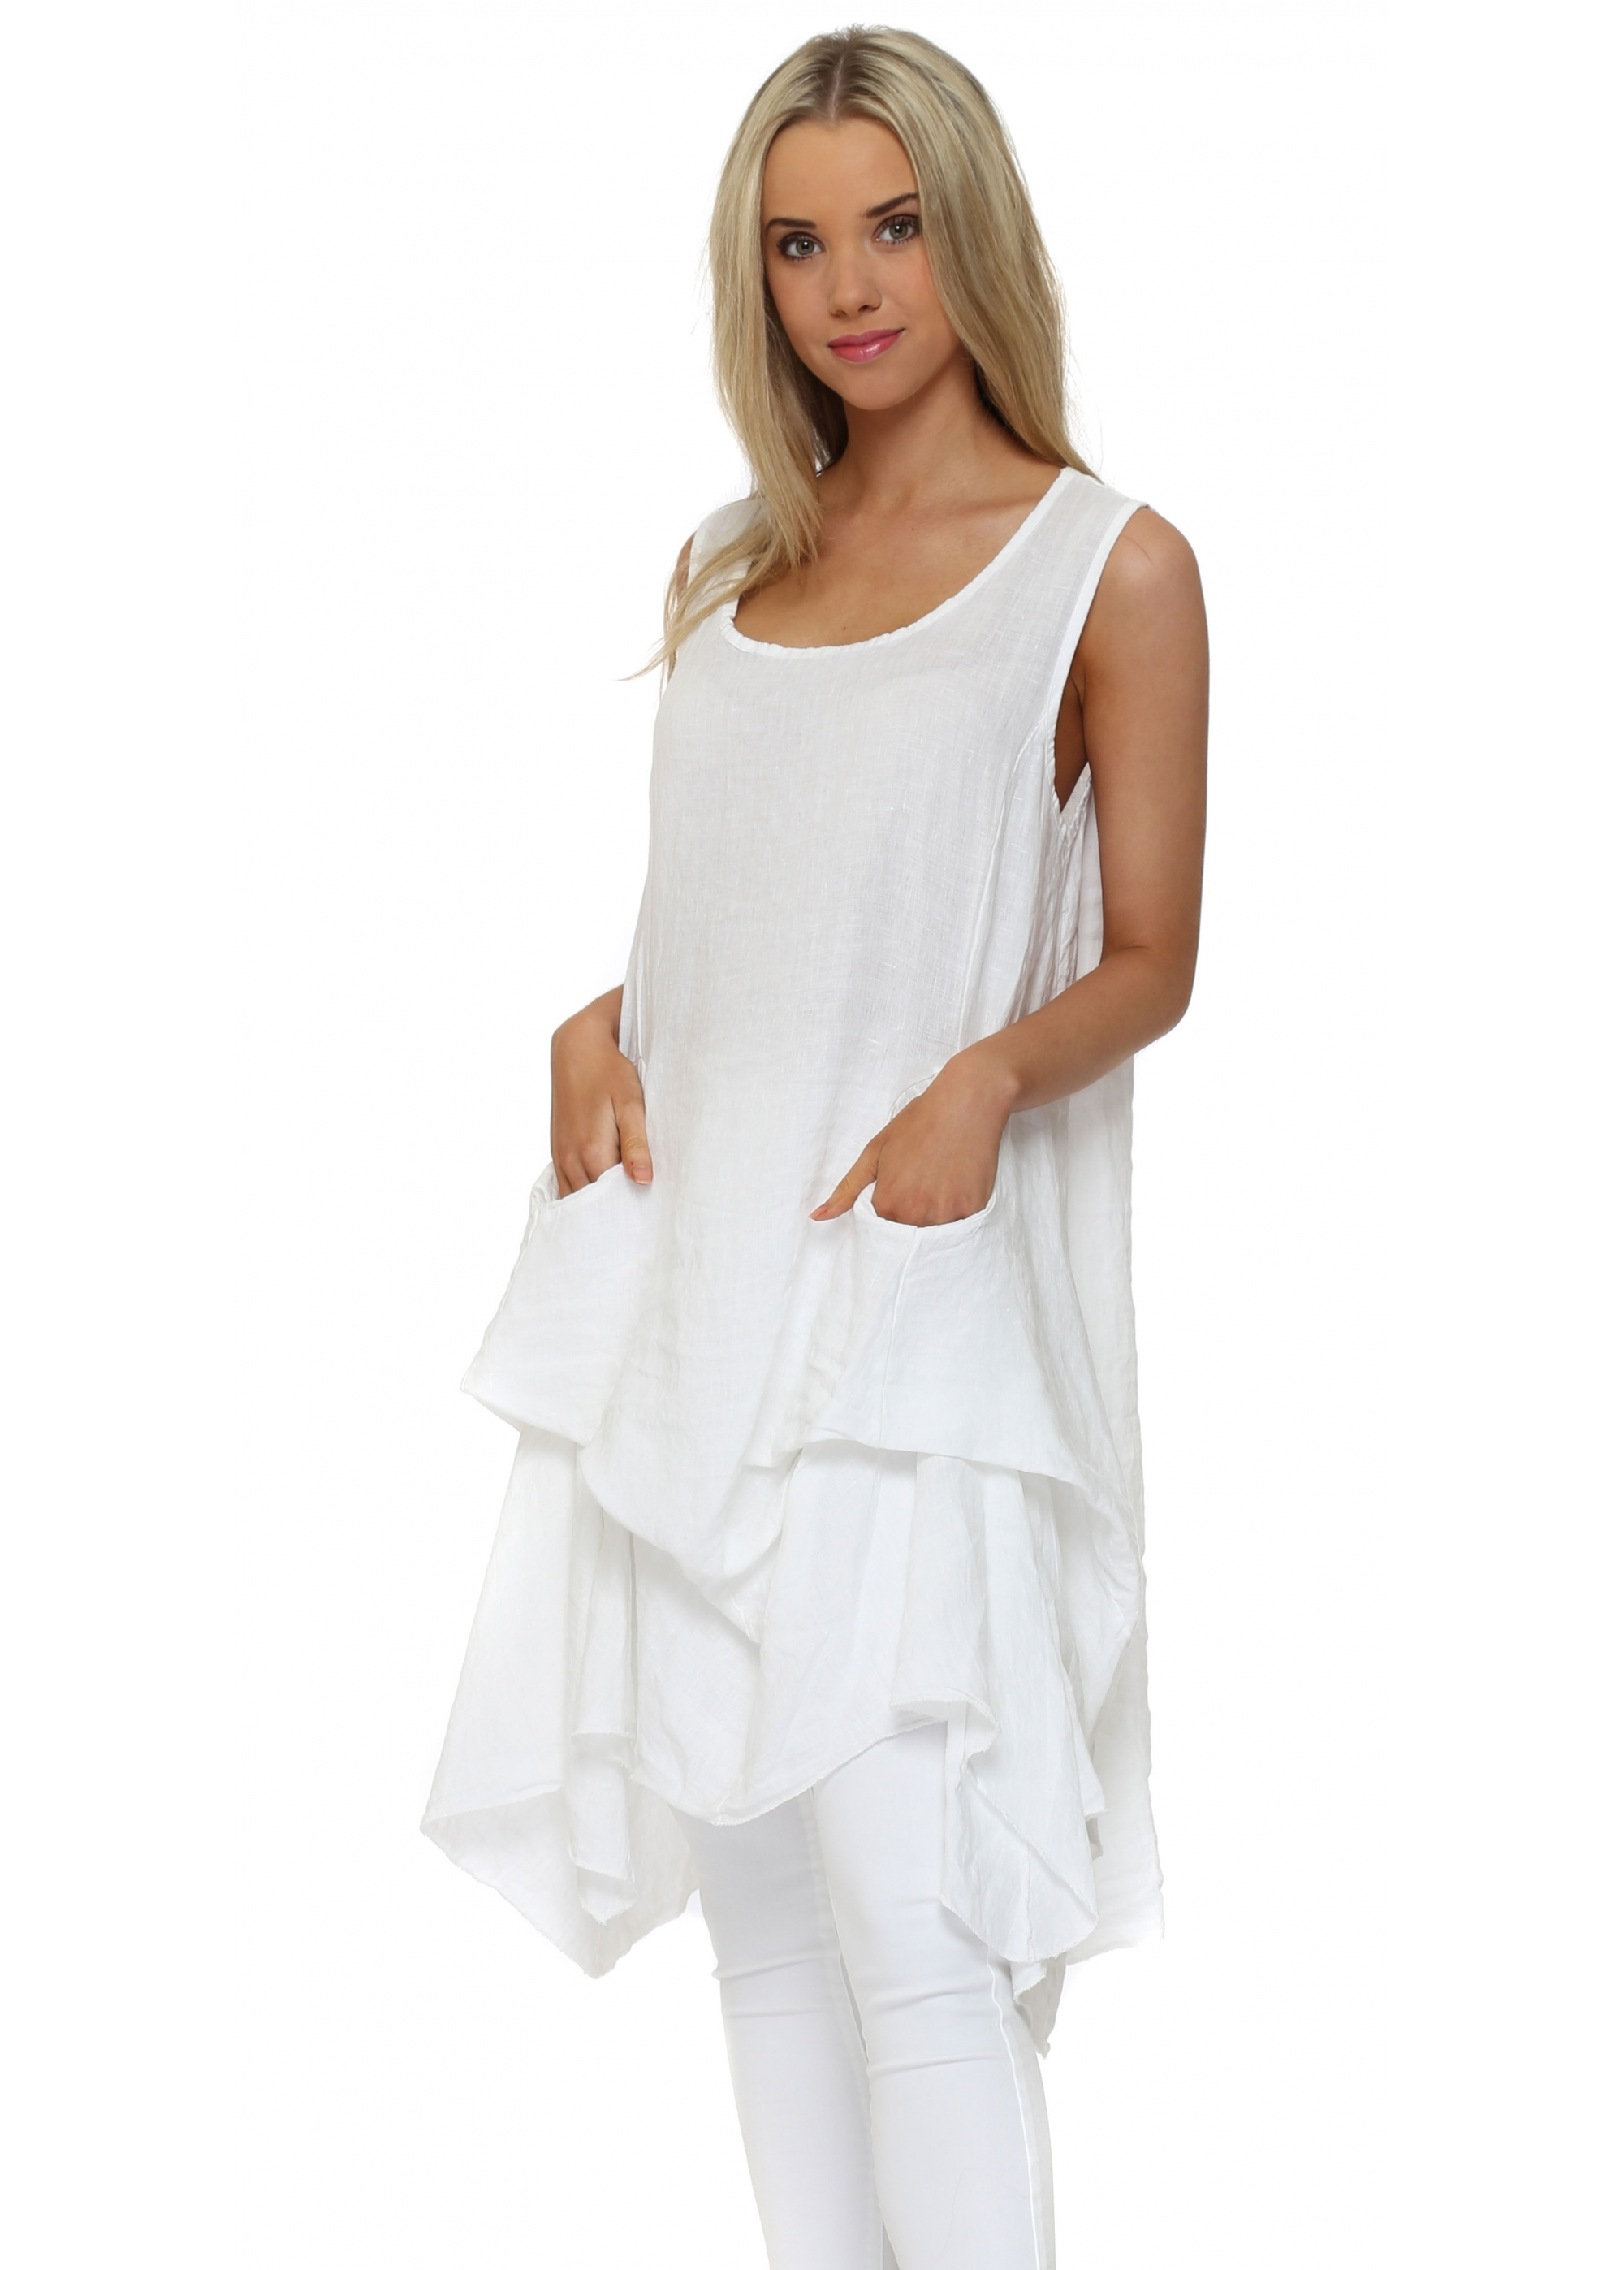 Linen Tunic Top, Linen Clothing, White Tunic Top, Linen Shirt, White Summer Top, Bohemian Clothing, Beach Tunic Top, Minimalist Fashion Top There are linen tunic for sale on Etsy, and they cost $ on average. The most common linen tunic material is linen. The most popular color? You guessed it.